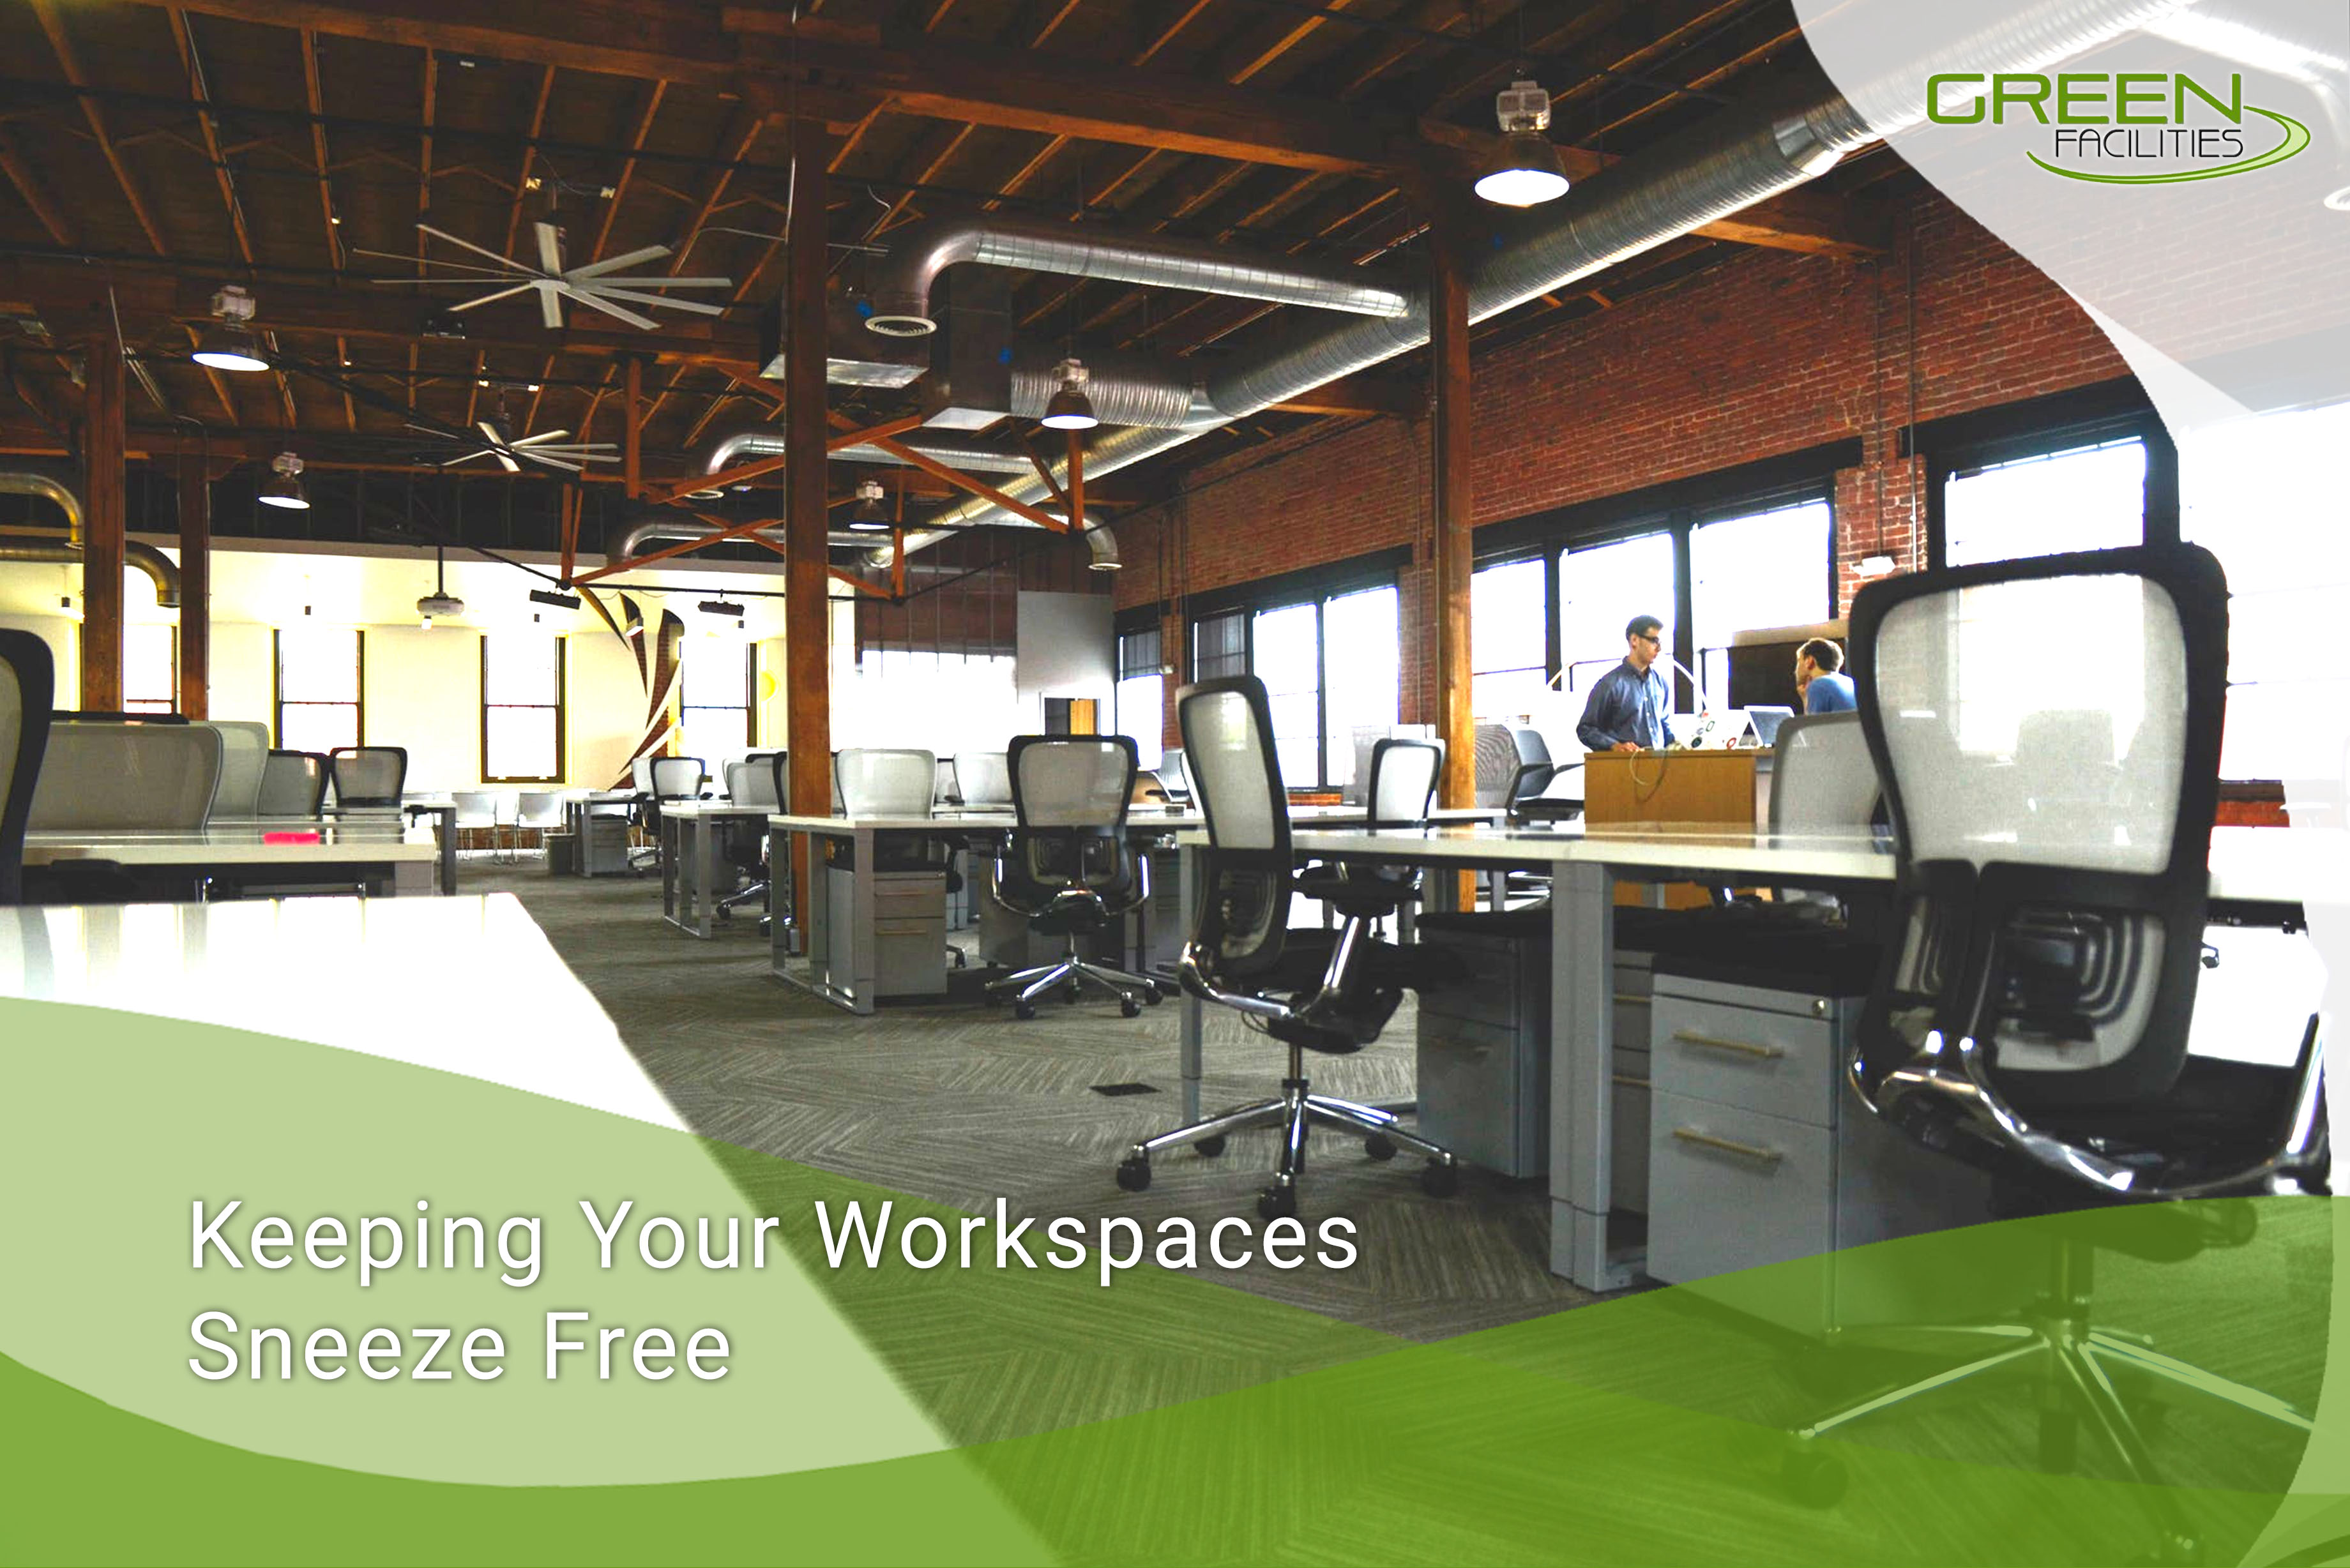 OBP02_Keeping-Your-Workspaces-Sneeze-Free